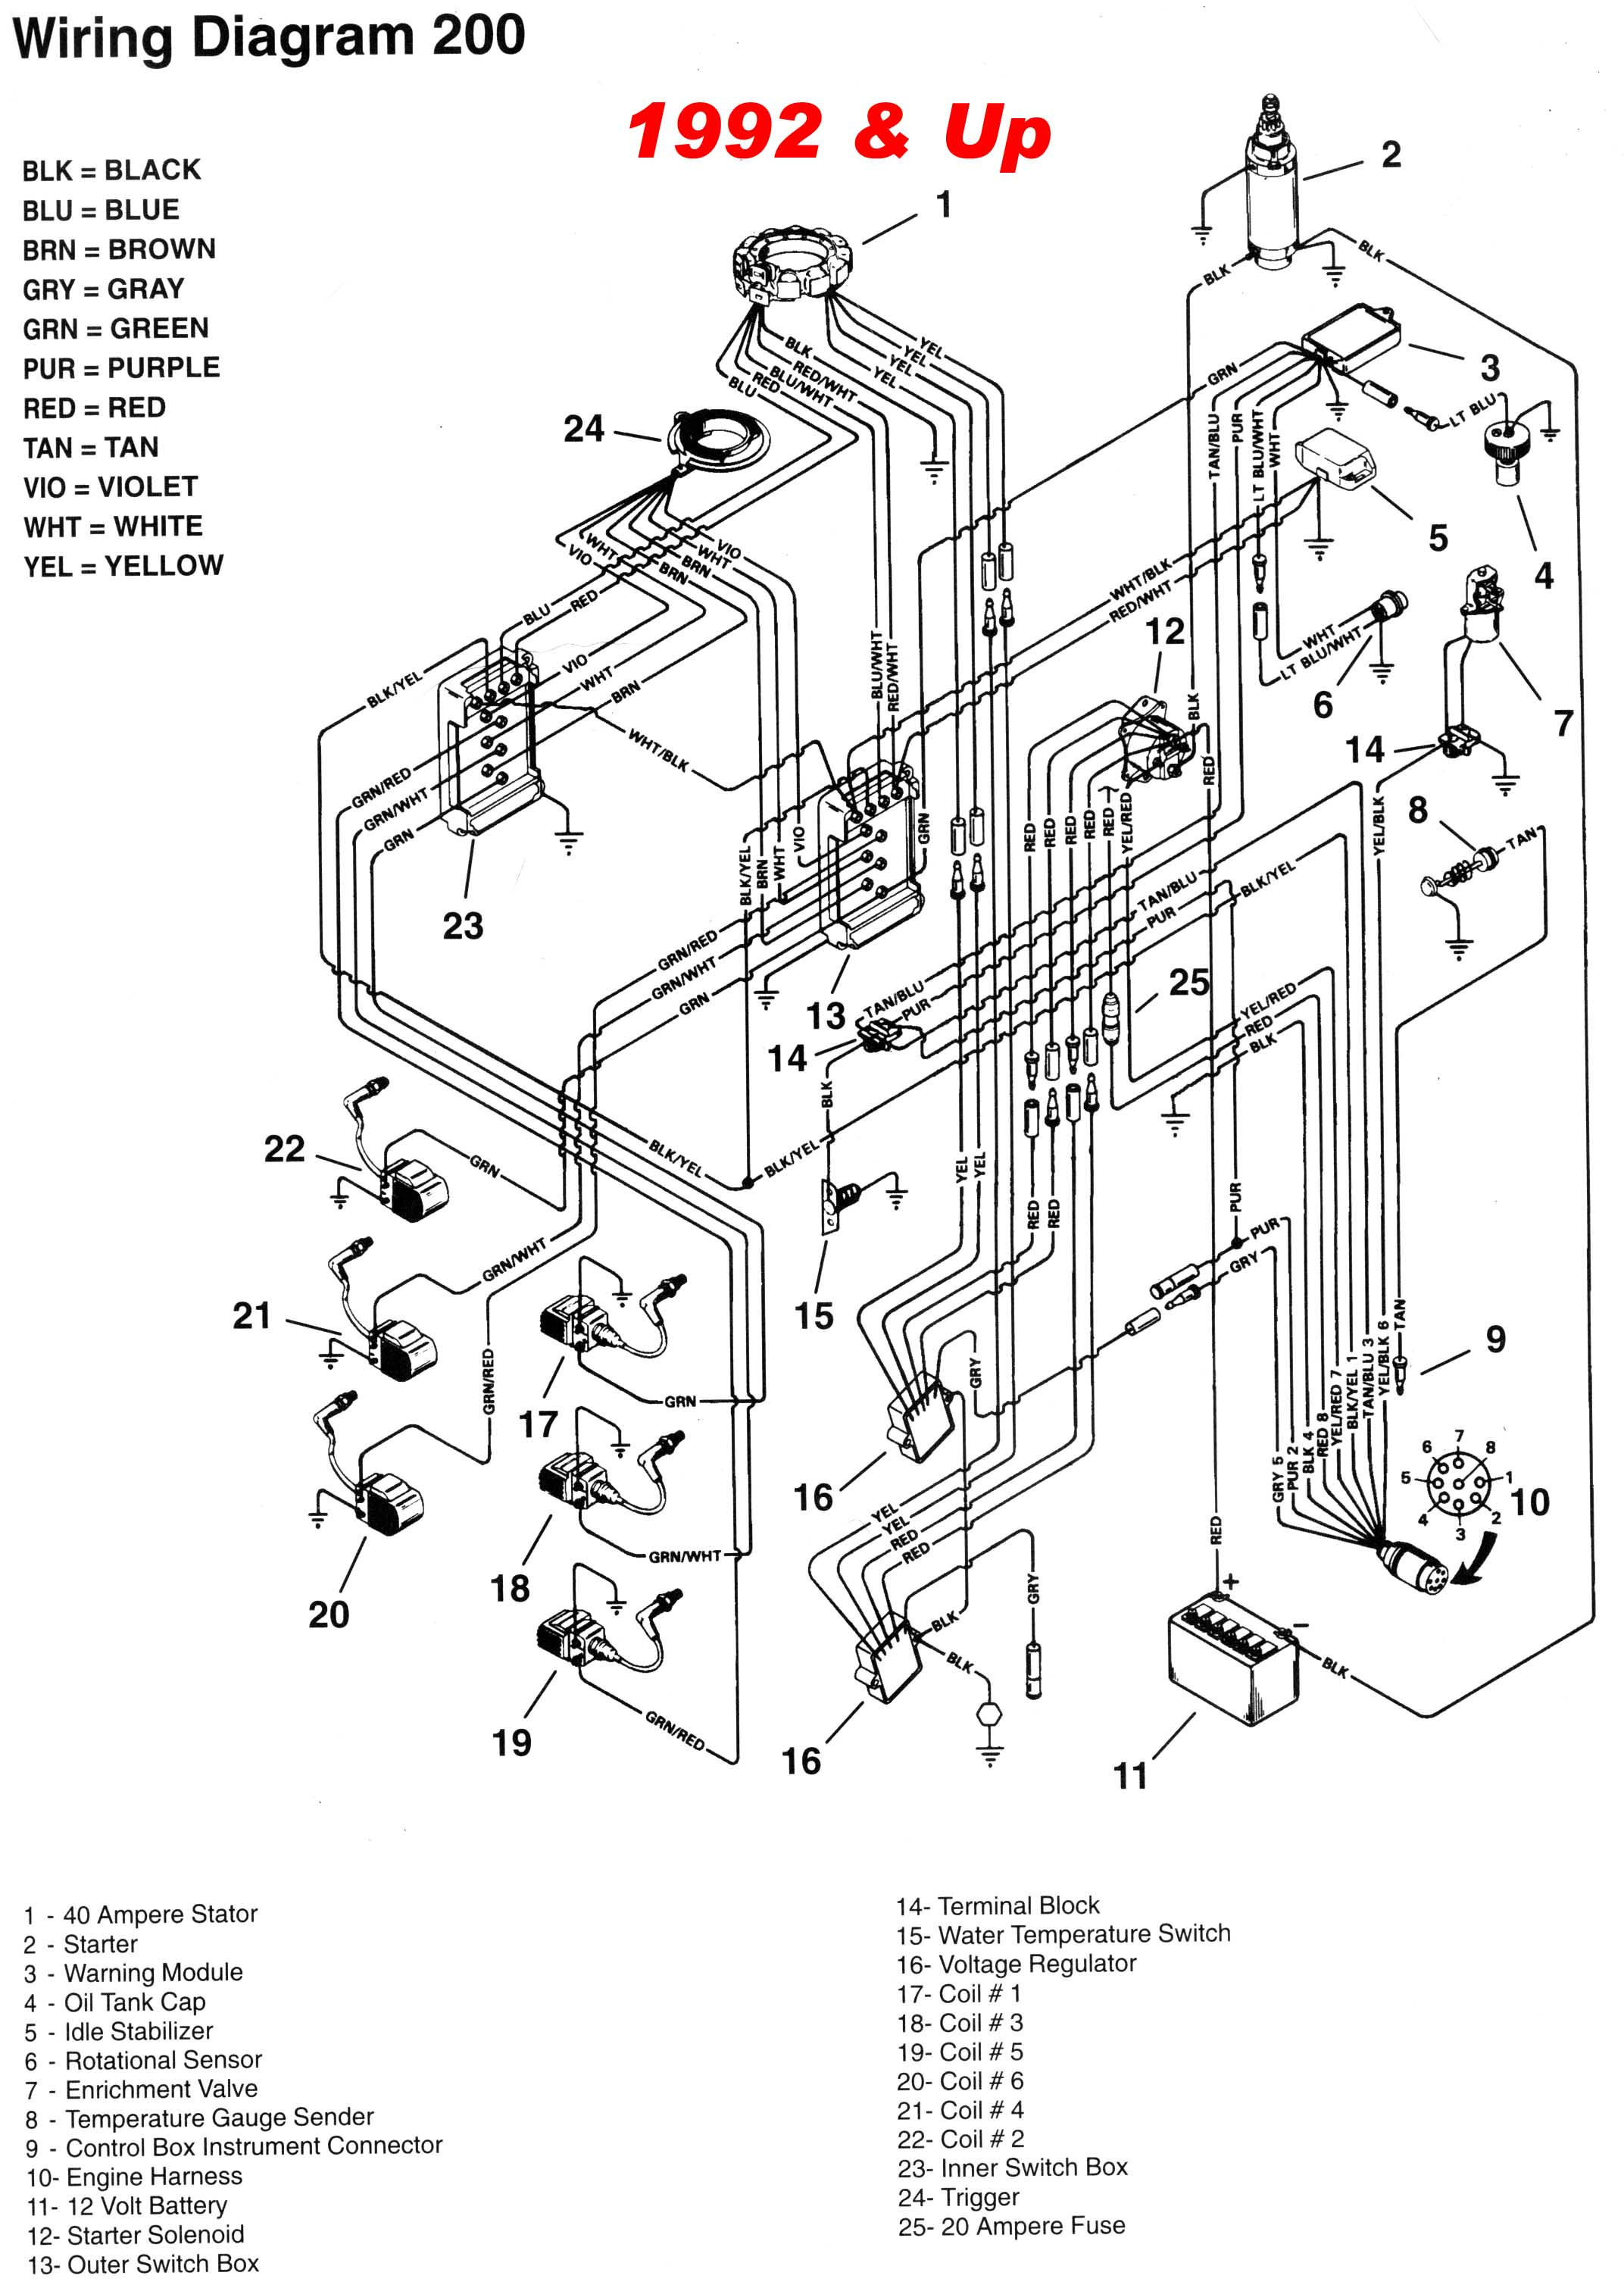 Omc Wiring Harness Diagram Power Box Jeep Adapter Best Ignition Switch Pictures Inspiration The Mercury 92up 200